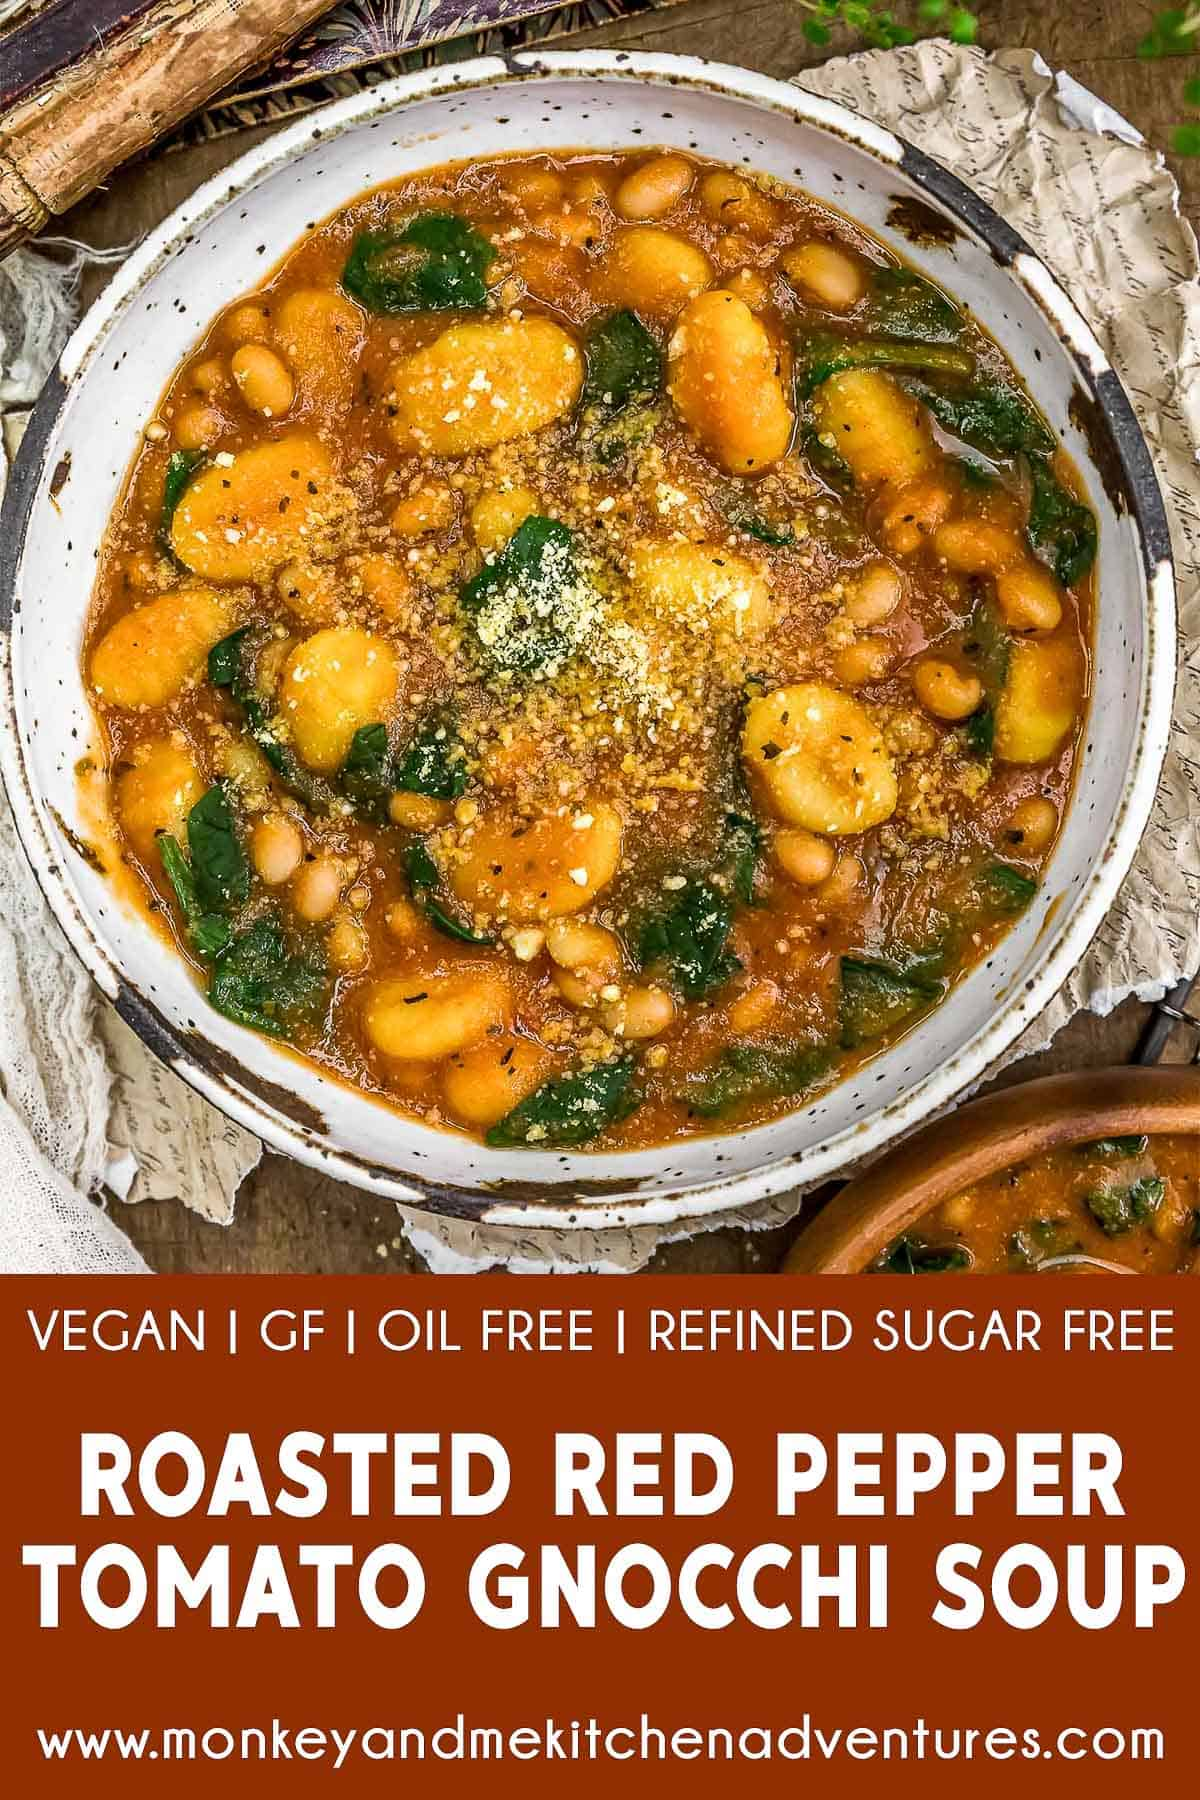 Roasted Red Pepper Tomato Gnocchi Soup with text description